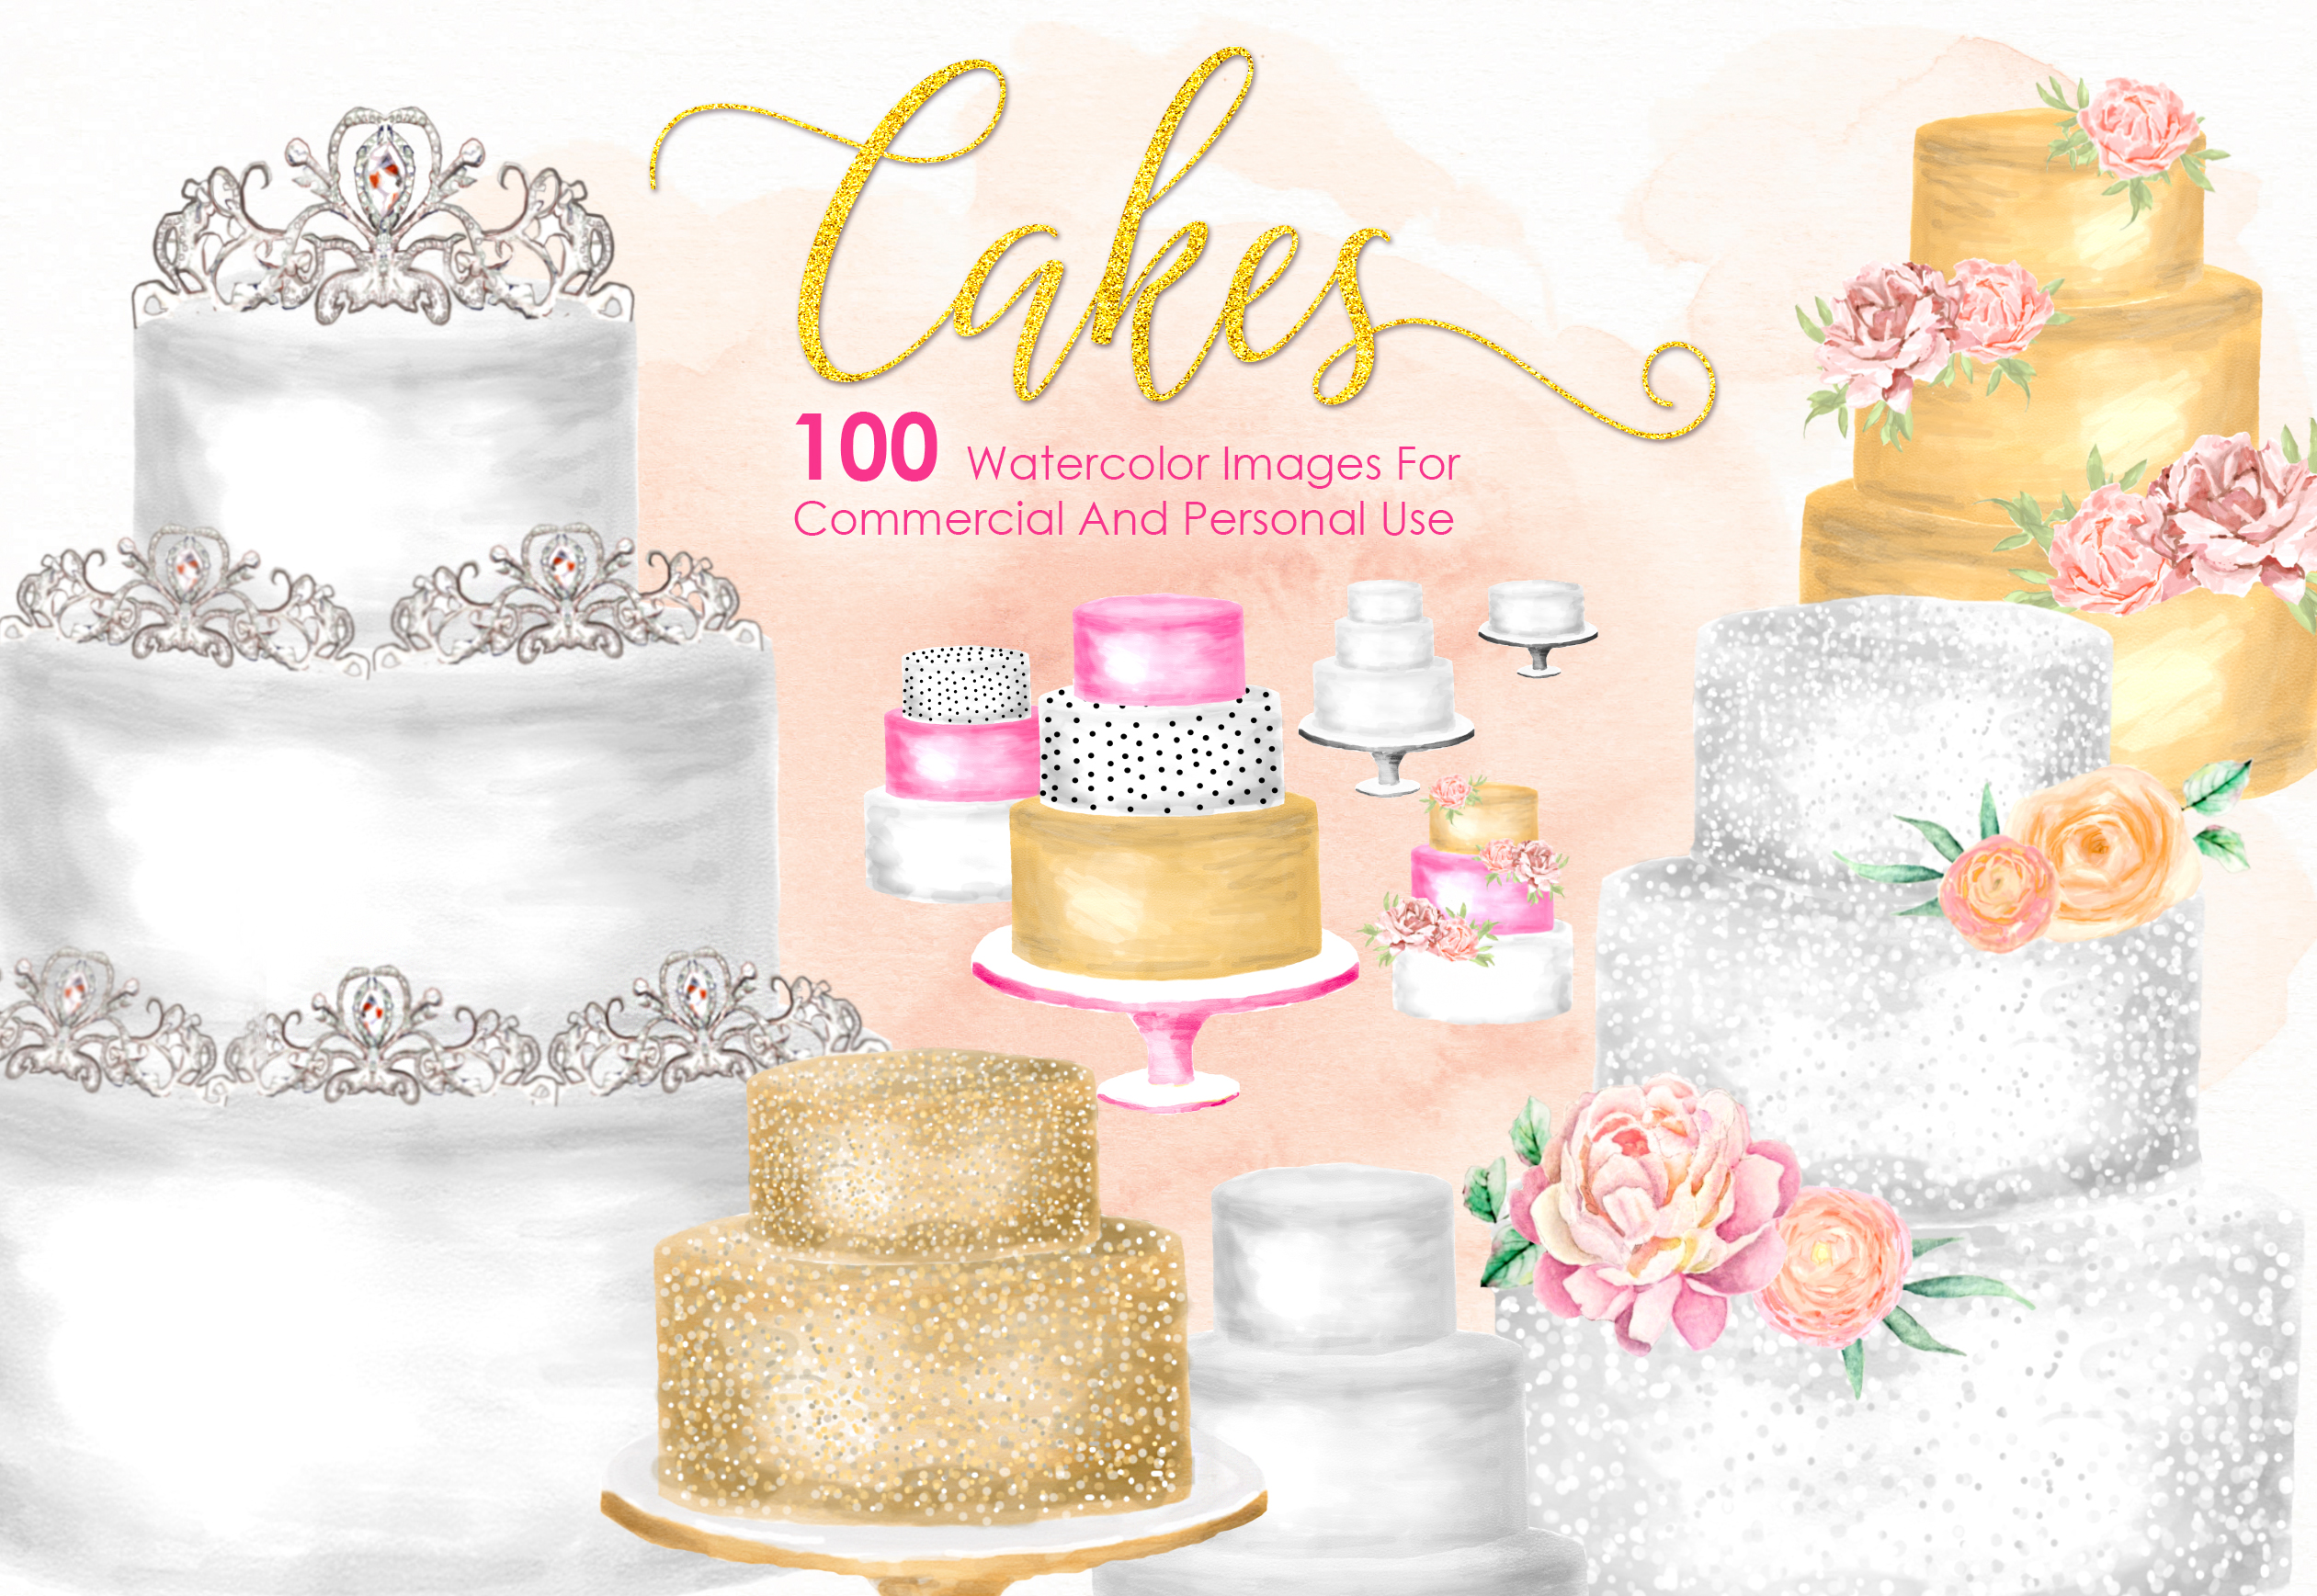 100 CAKES Watercolor Cakes Bundle Pastry Cooking Kitchen example image 1